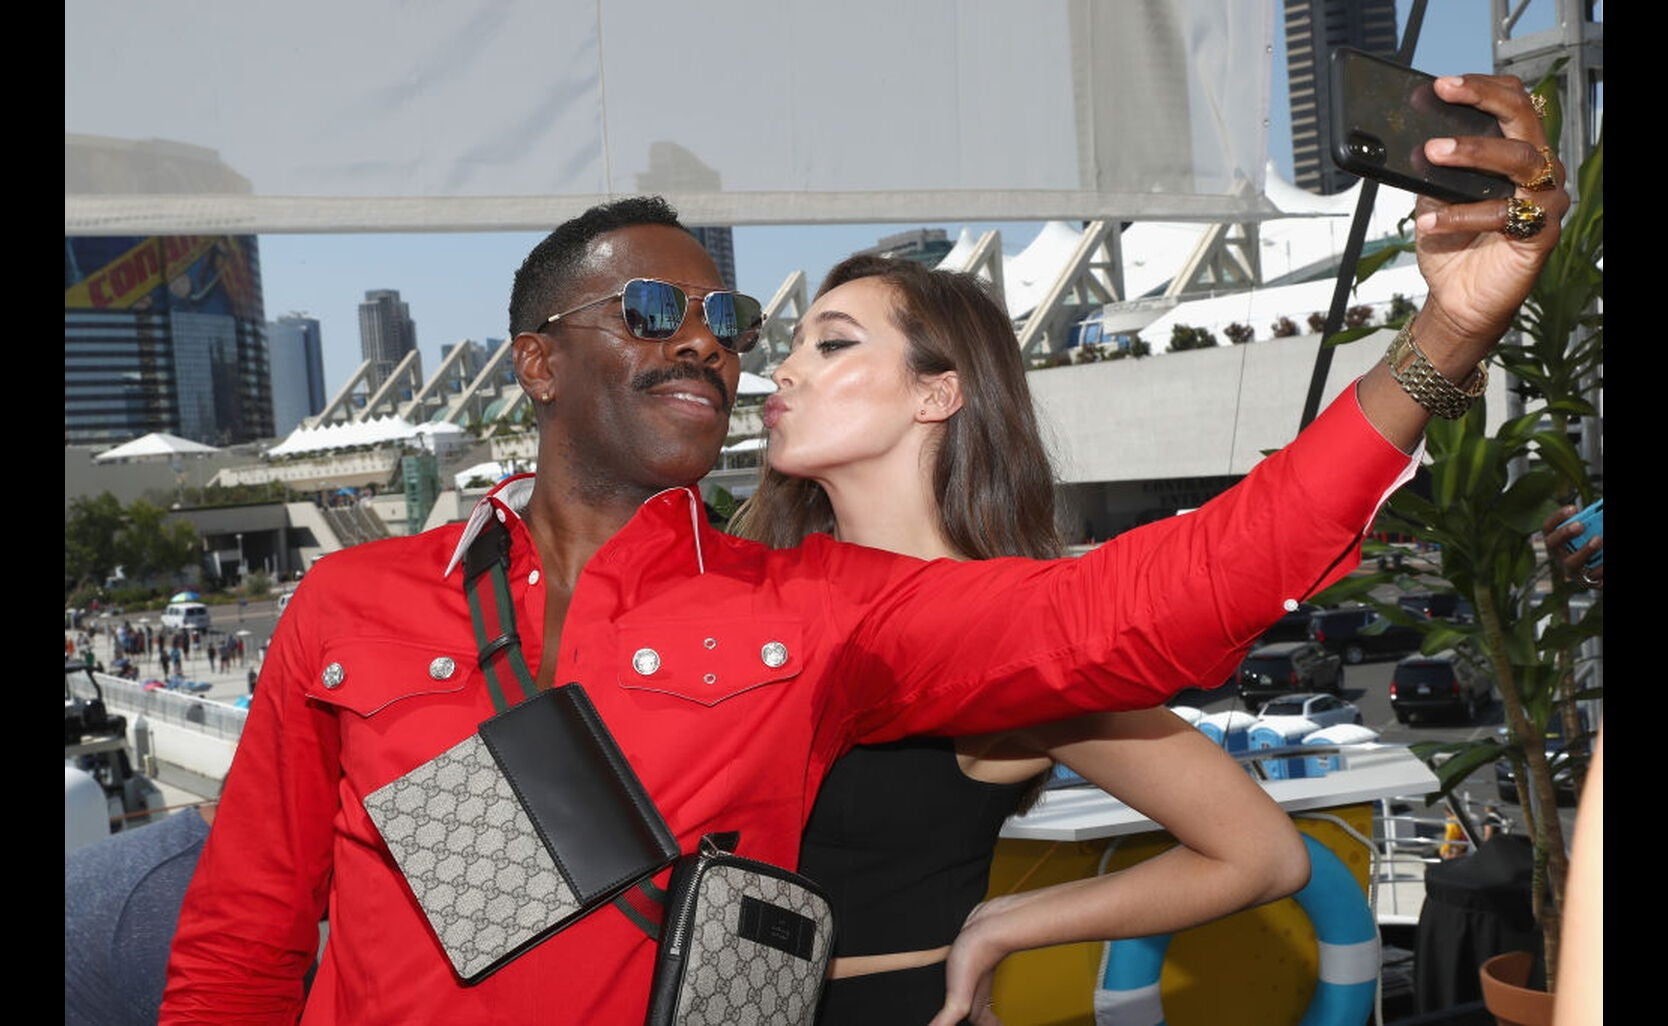 Actors Colman Domingo and Alycia Debnam-Carey at Comic-Con 2018